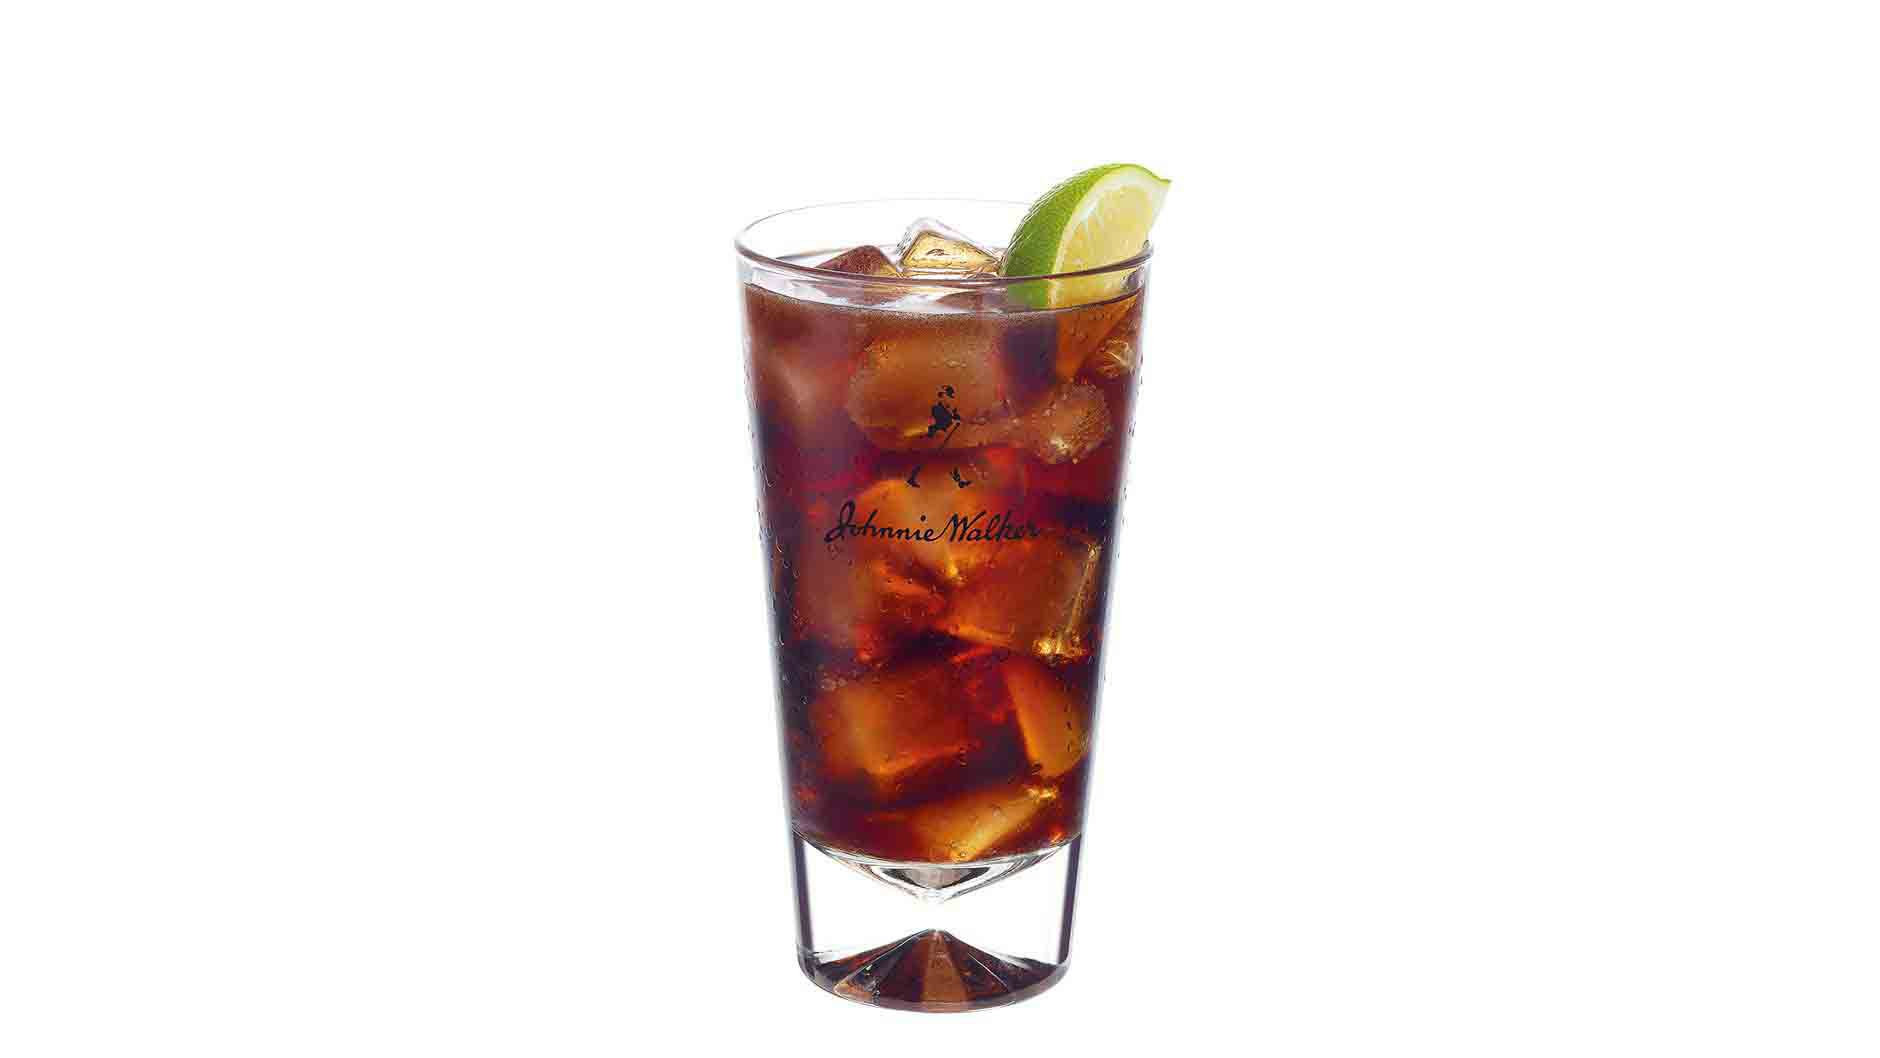 Johnnie Walker Black and Cola cocktail in a tall glass